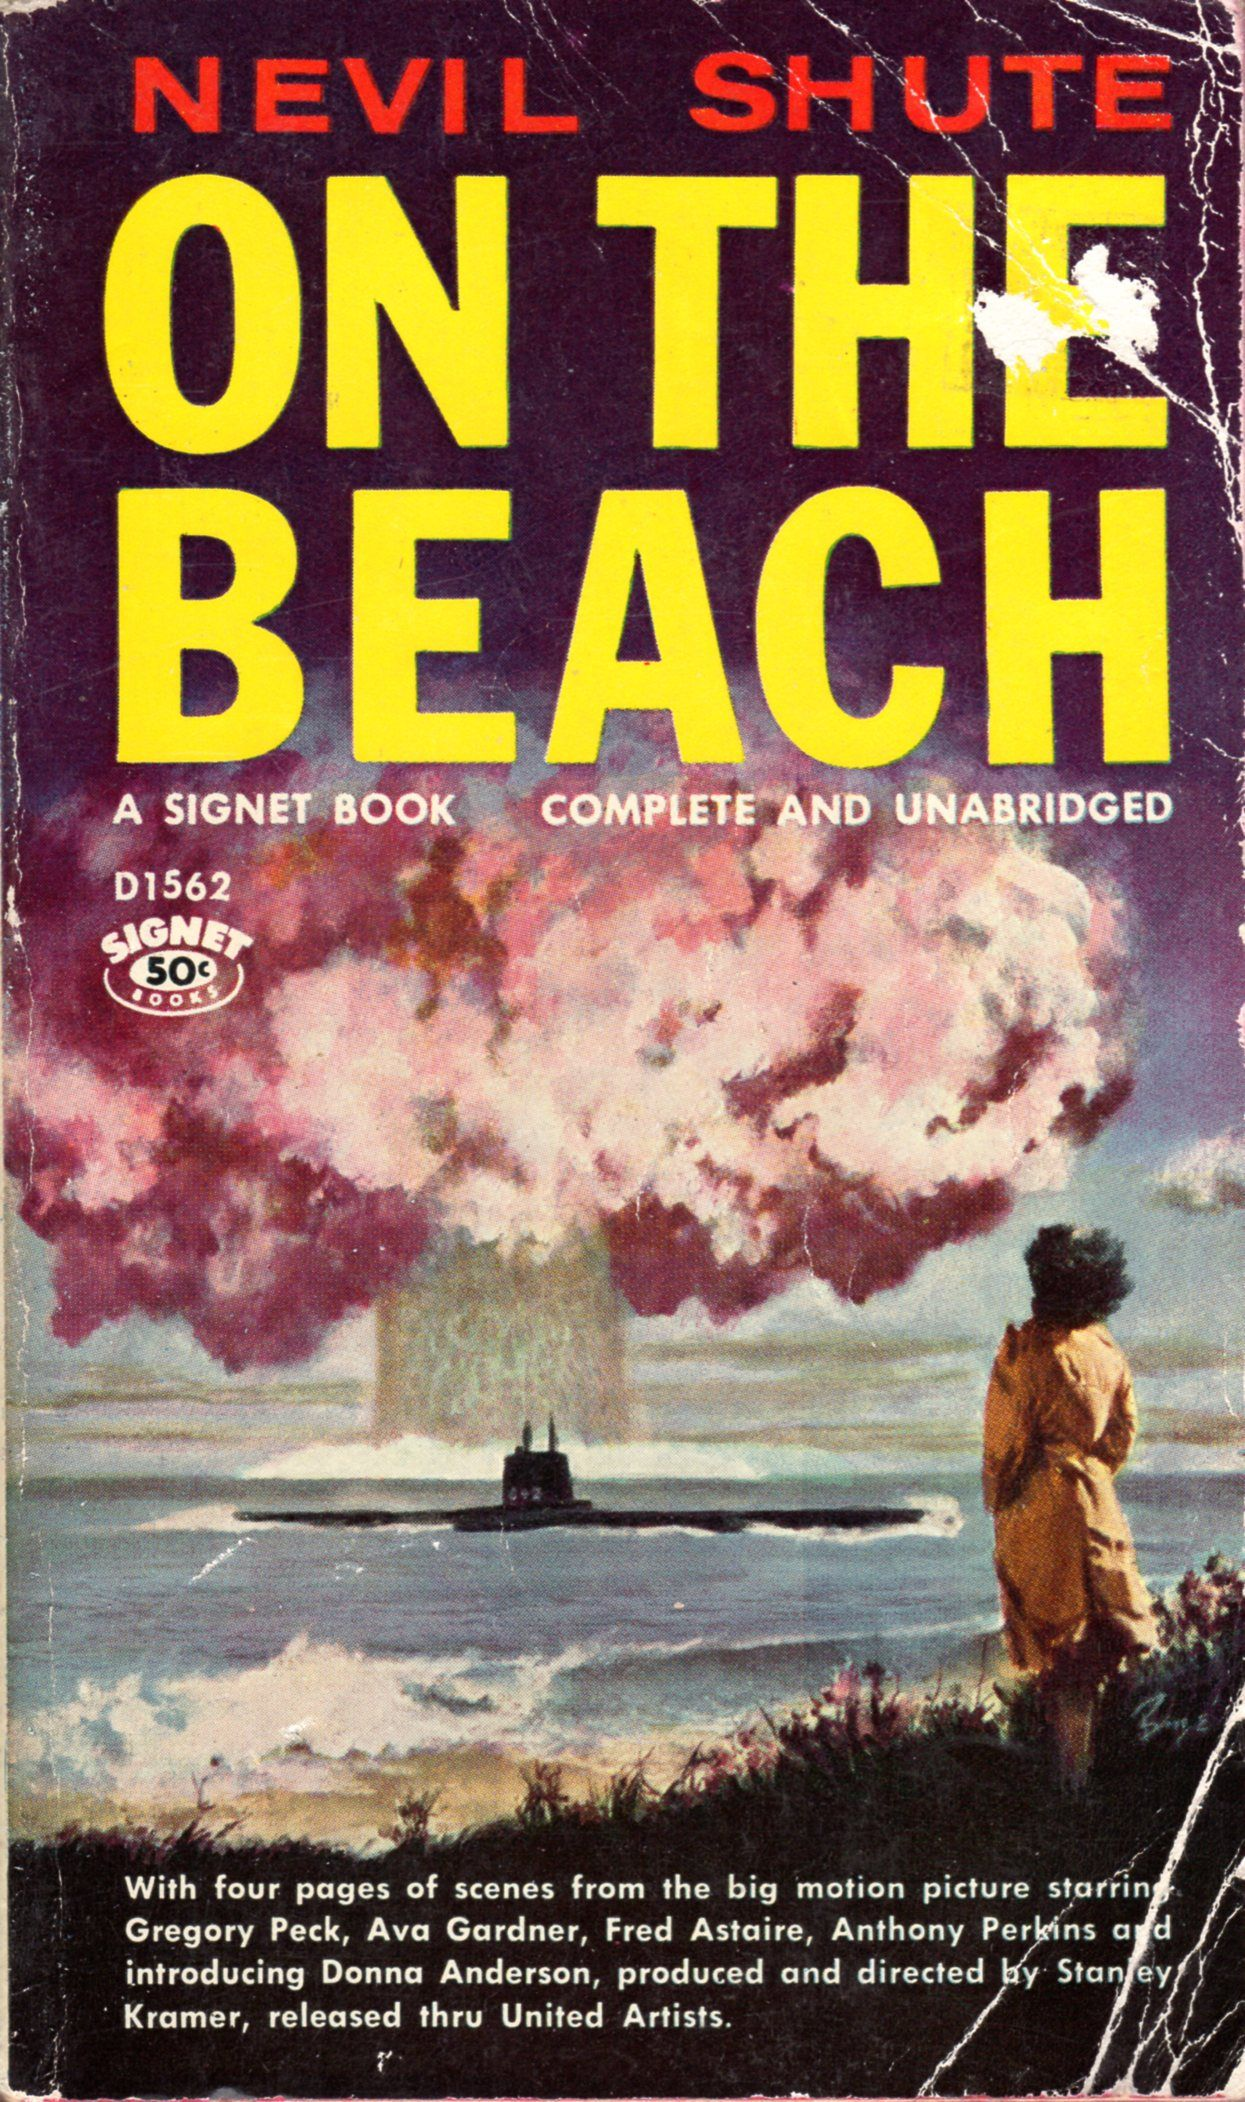 On The Beach Nevil Shute My Books A Cover Gallery Pinterest